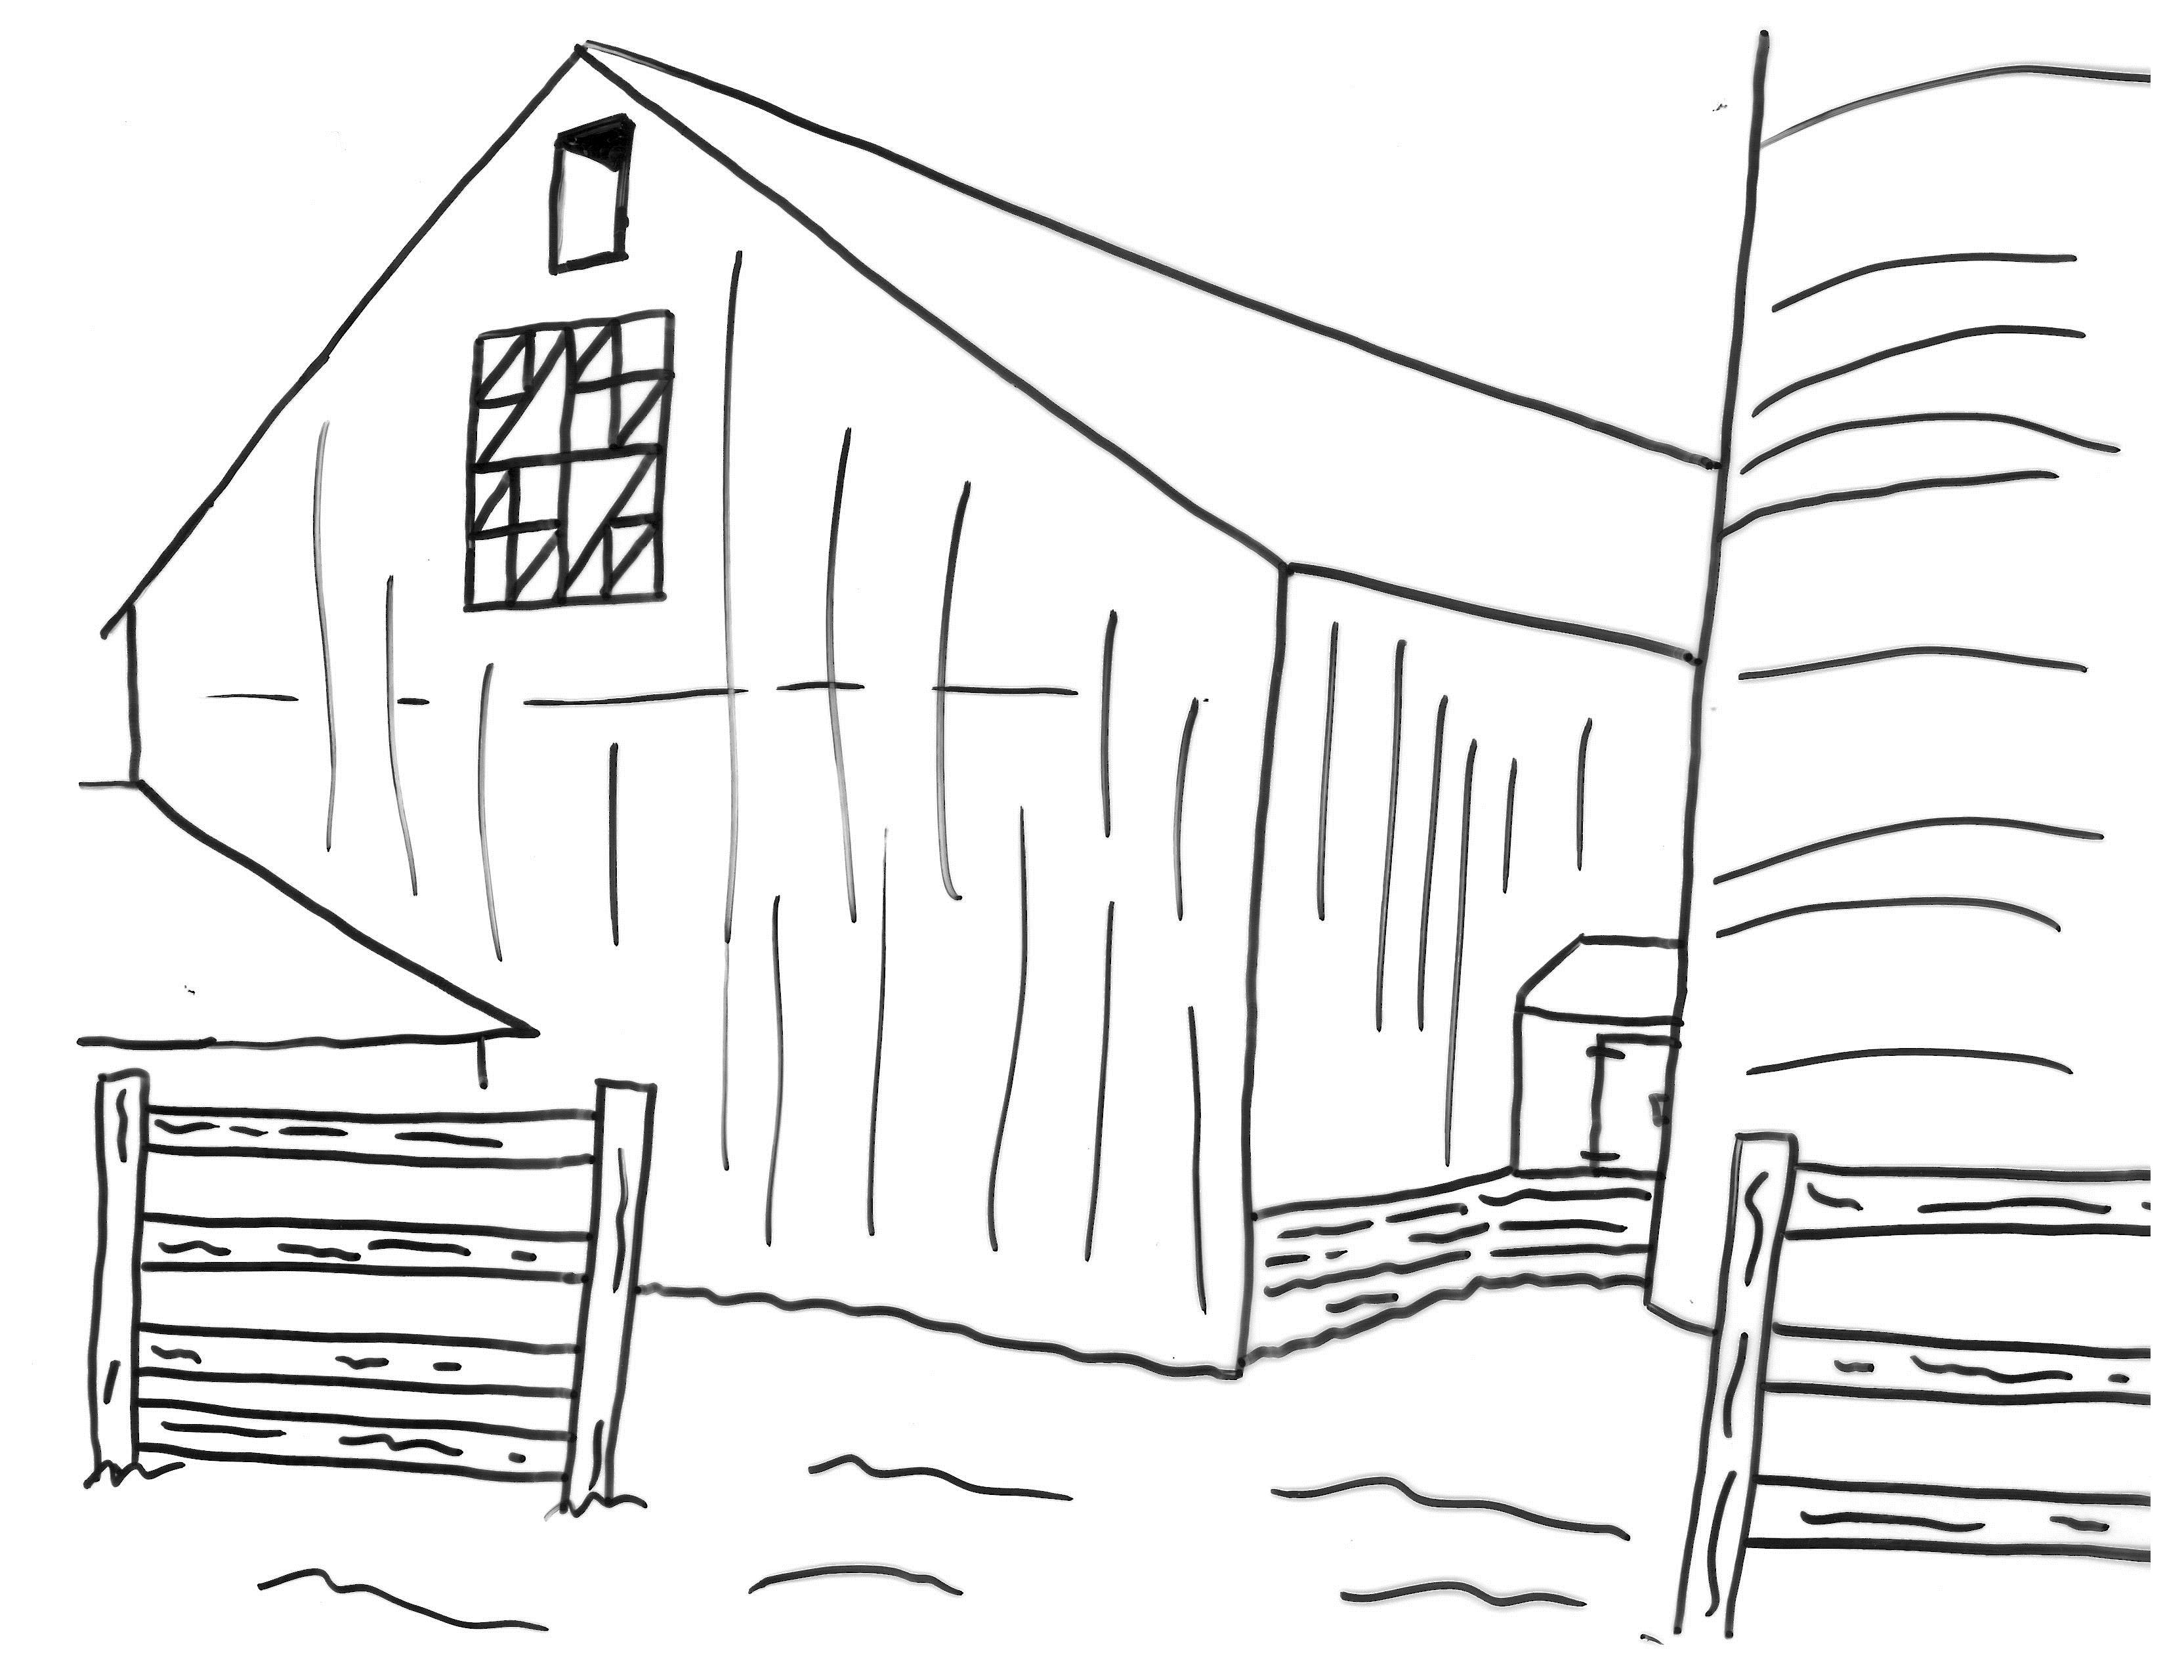 It's just a photo of Zany Barn Coloring Sheet